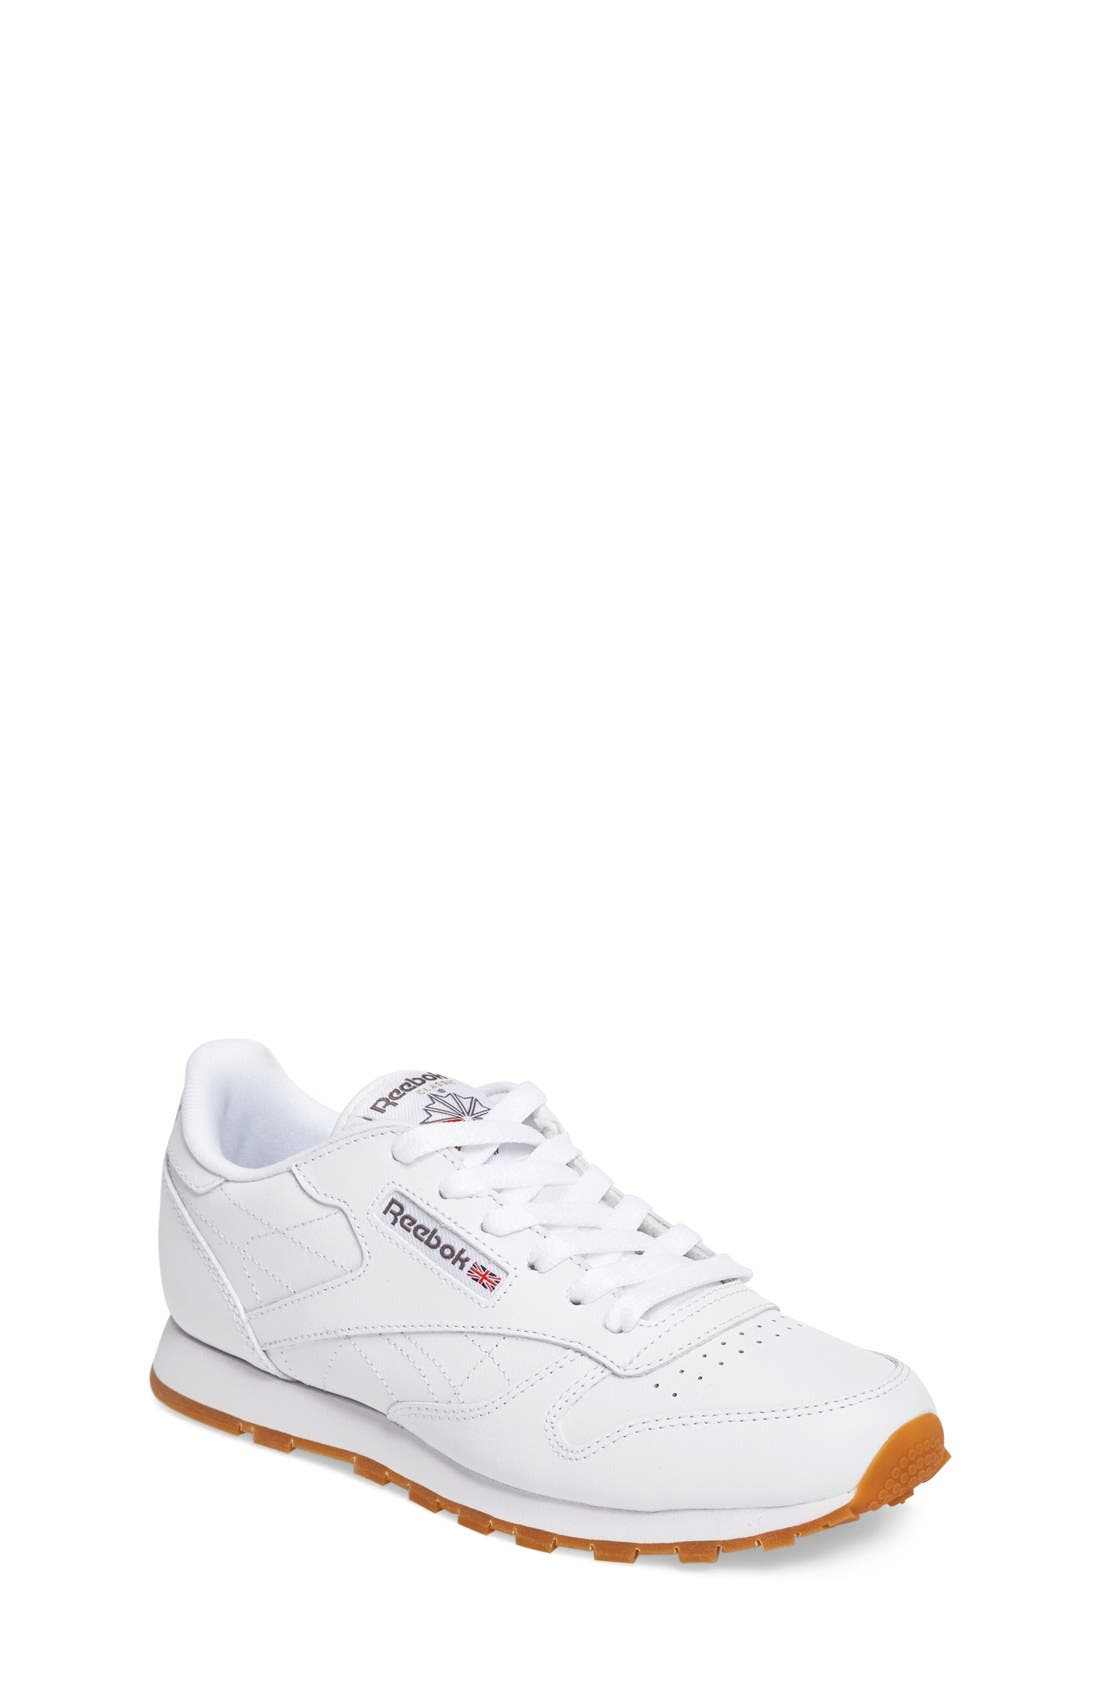 Classic Leather Sneaker,                             Main thumbnail 1, color,                             White